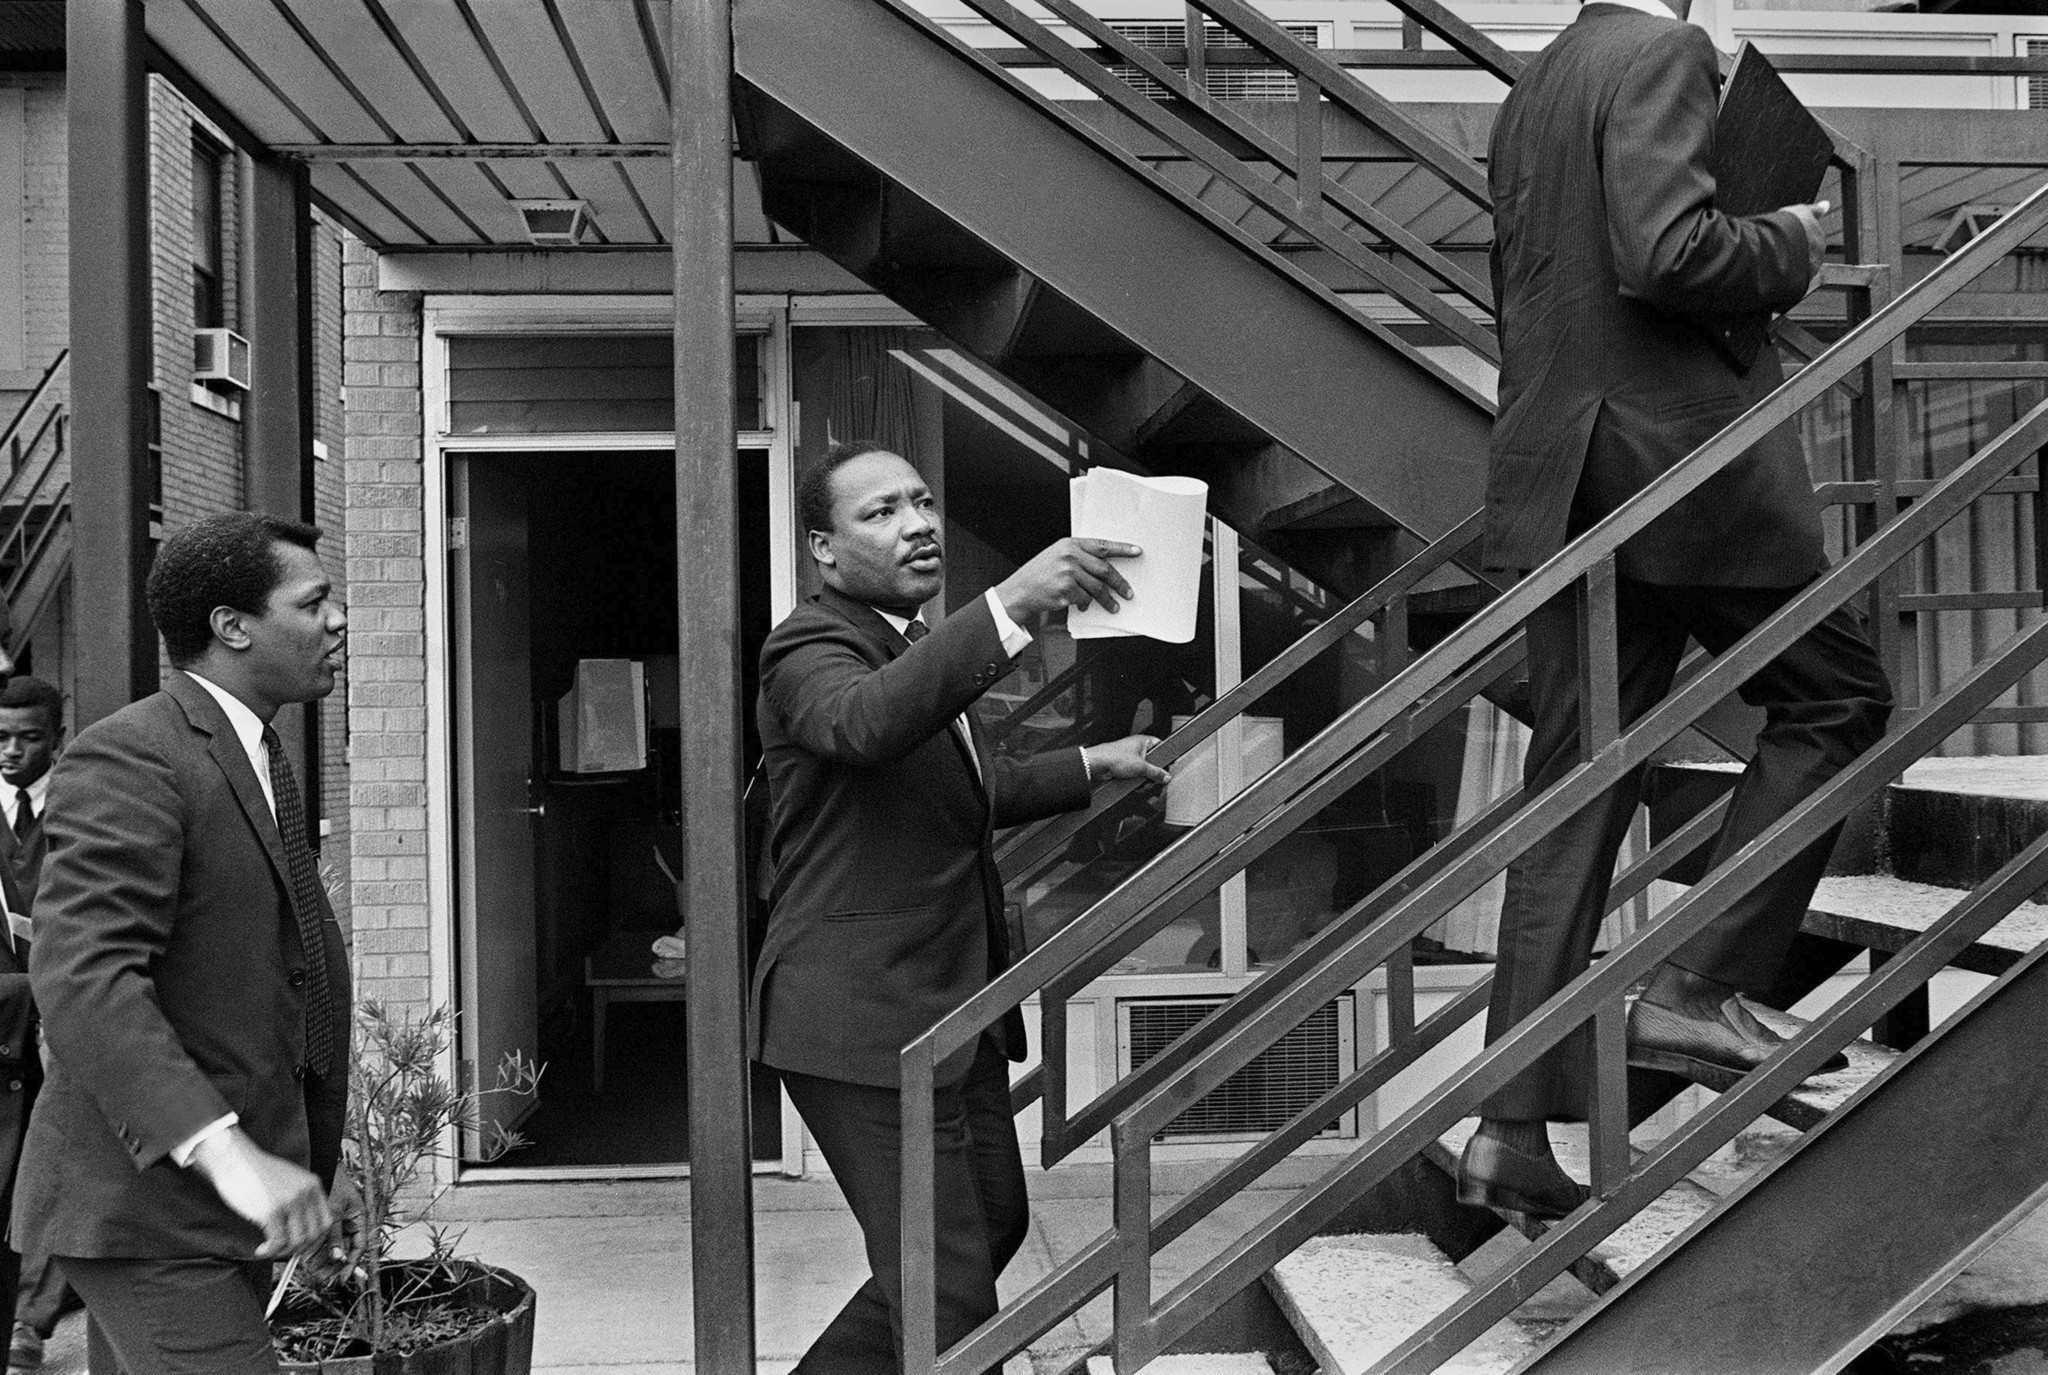 In this April 3, 1968 photo, the Rev. Dr. Martin Luther King Jr., center, and his aides walk at the